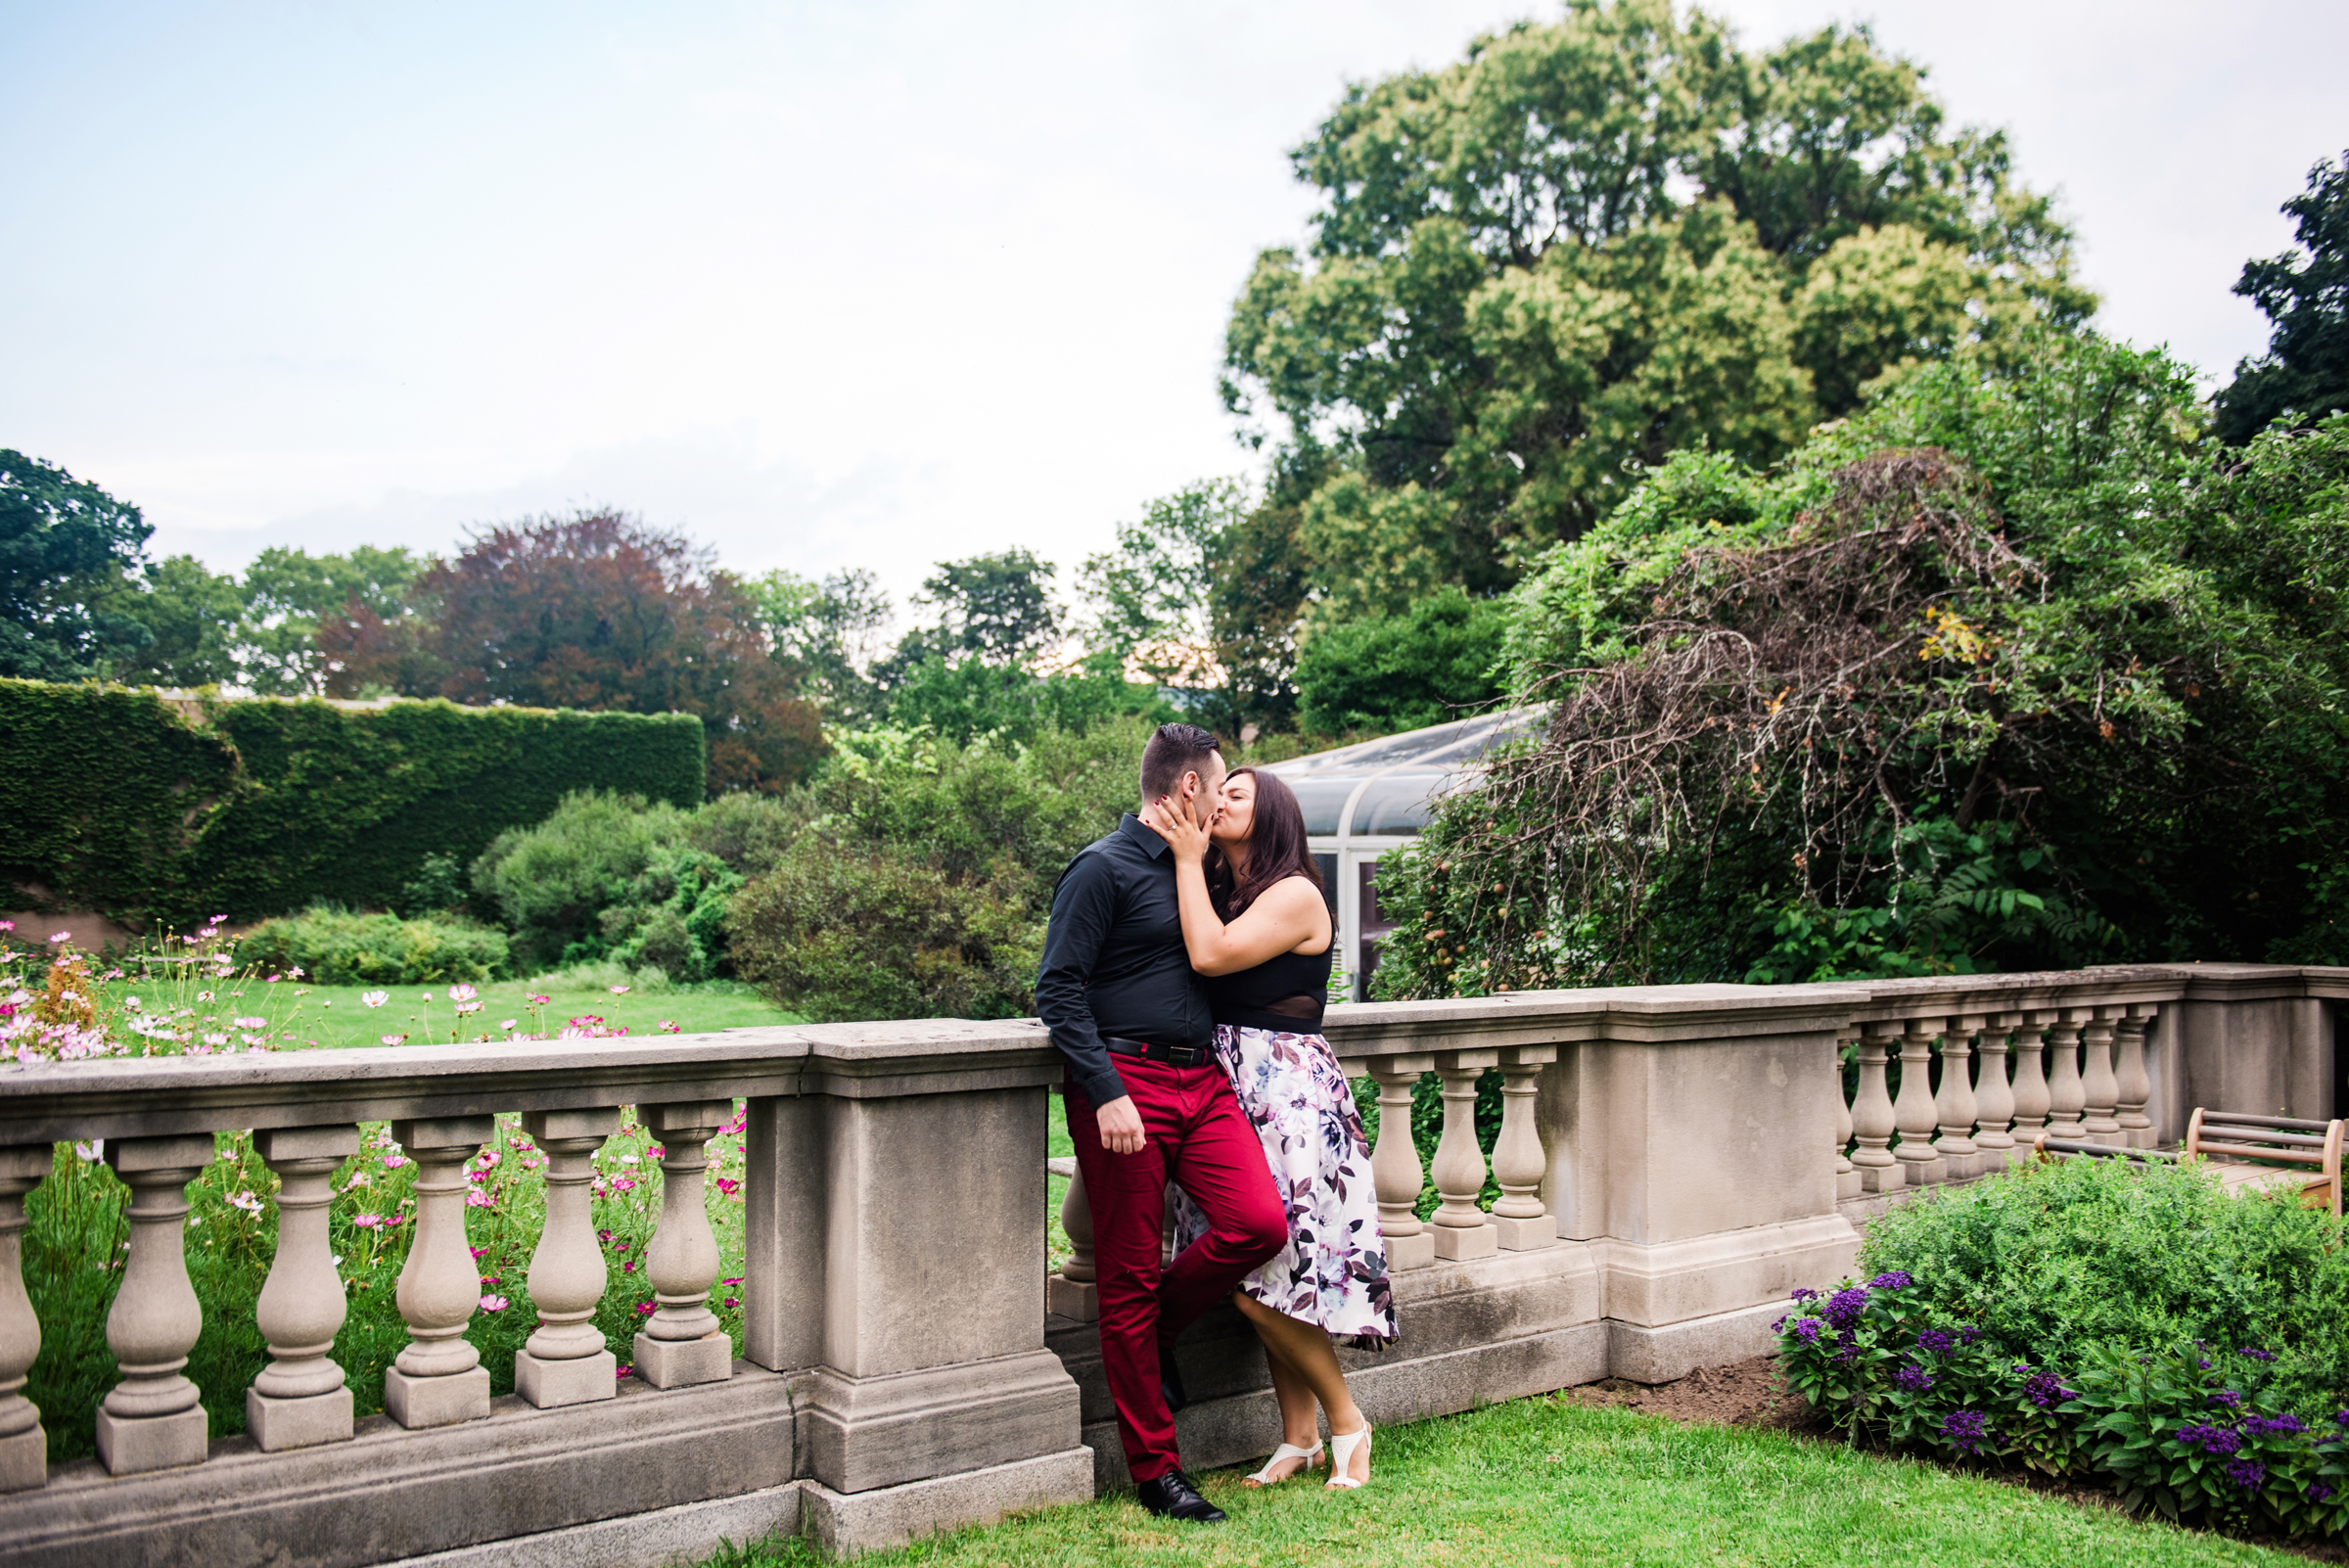 George_Eastman_House_Rochester_Engagement_Session_JILL_STUDIO_Rochester_NY_Photographer_DSC_6319.jpg